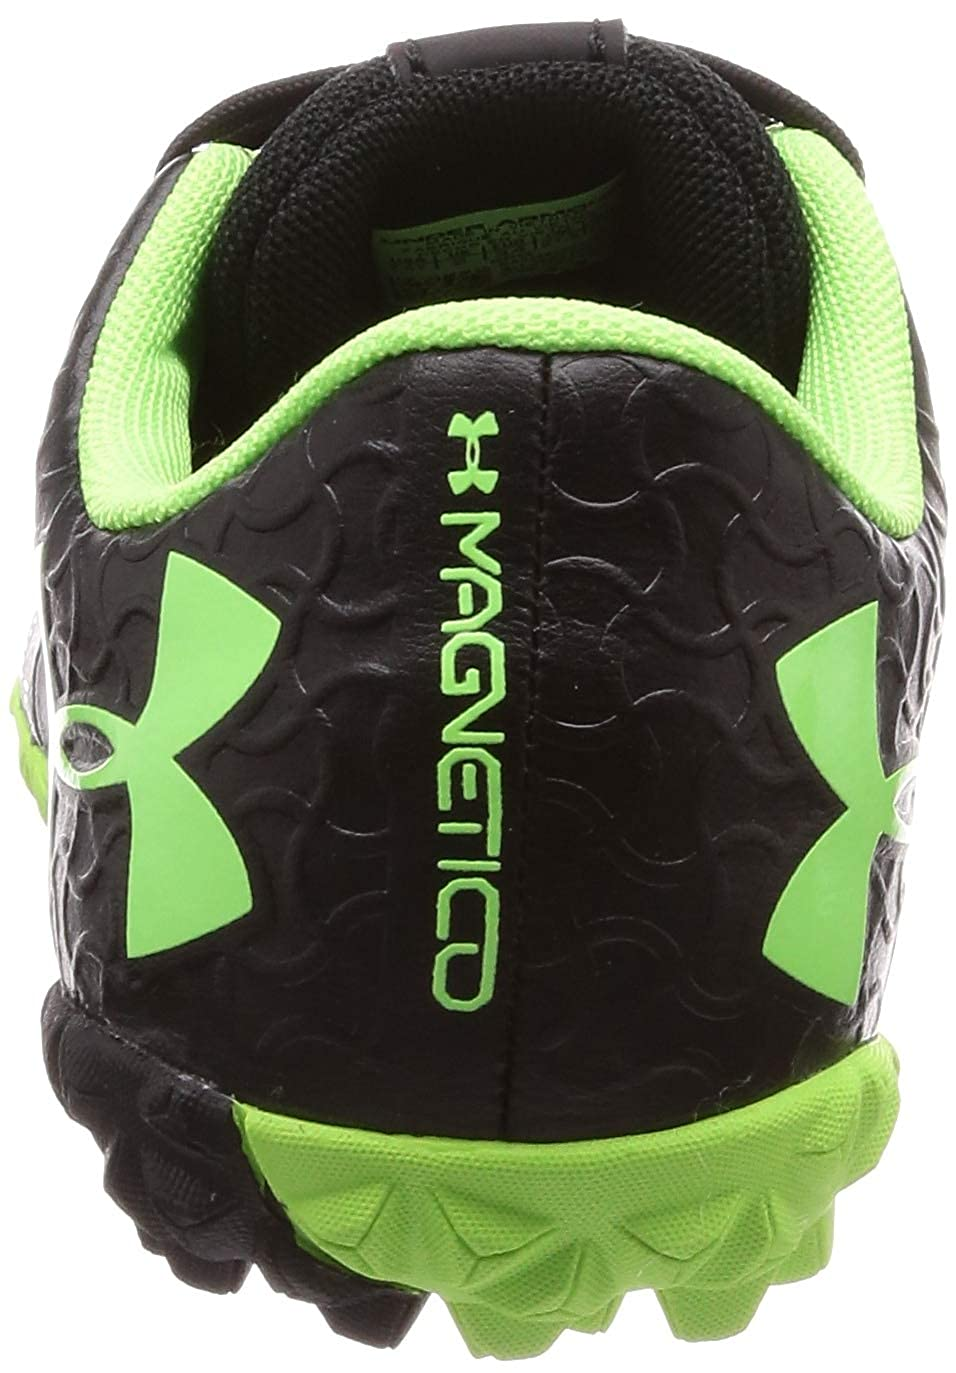 Under Armour Kids Magnetico Select Jr Turf Soccer Shoe